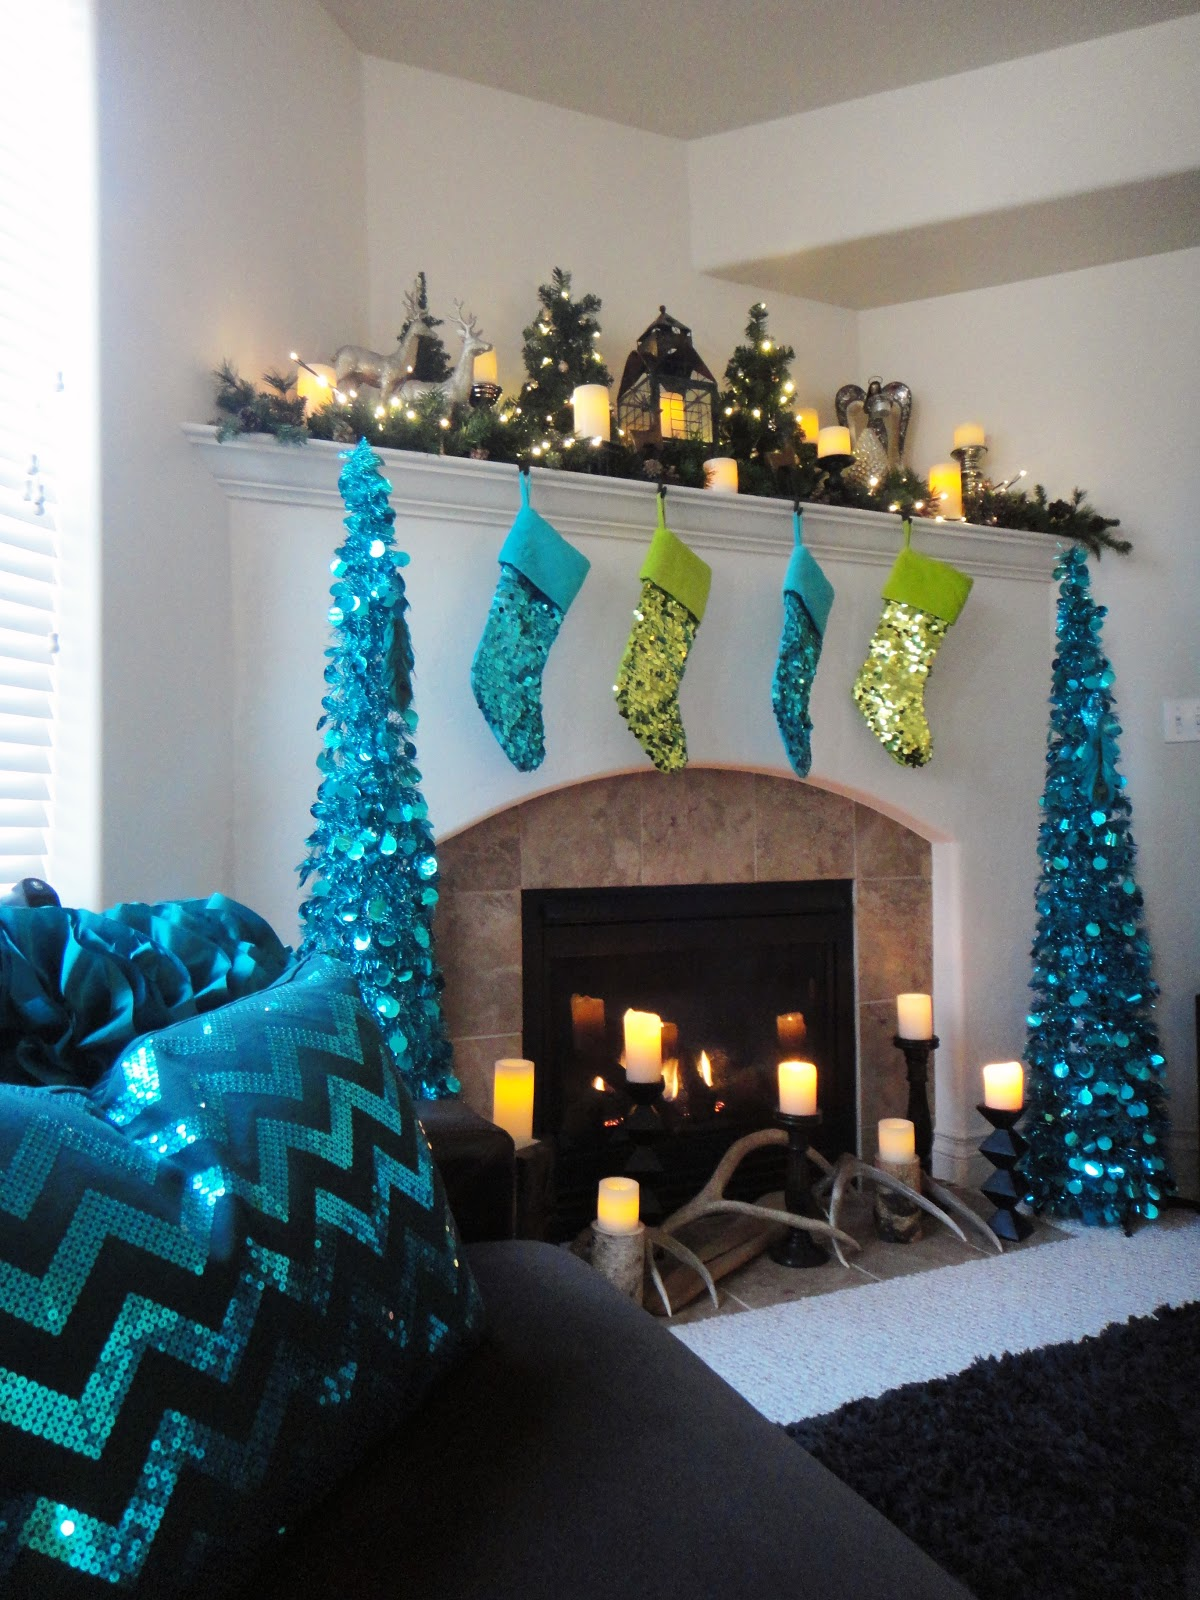 Xmas Decoration Ideas For Living Room: Worth Pinning: Sparkling Holiday Decor